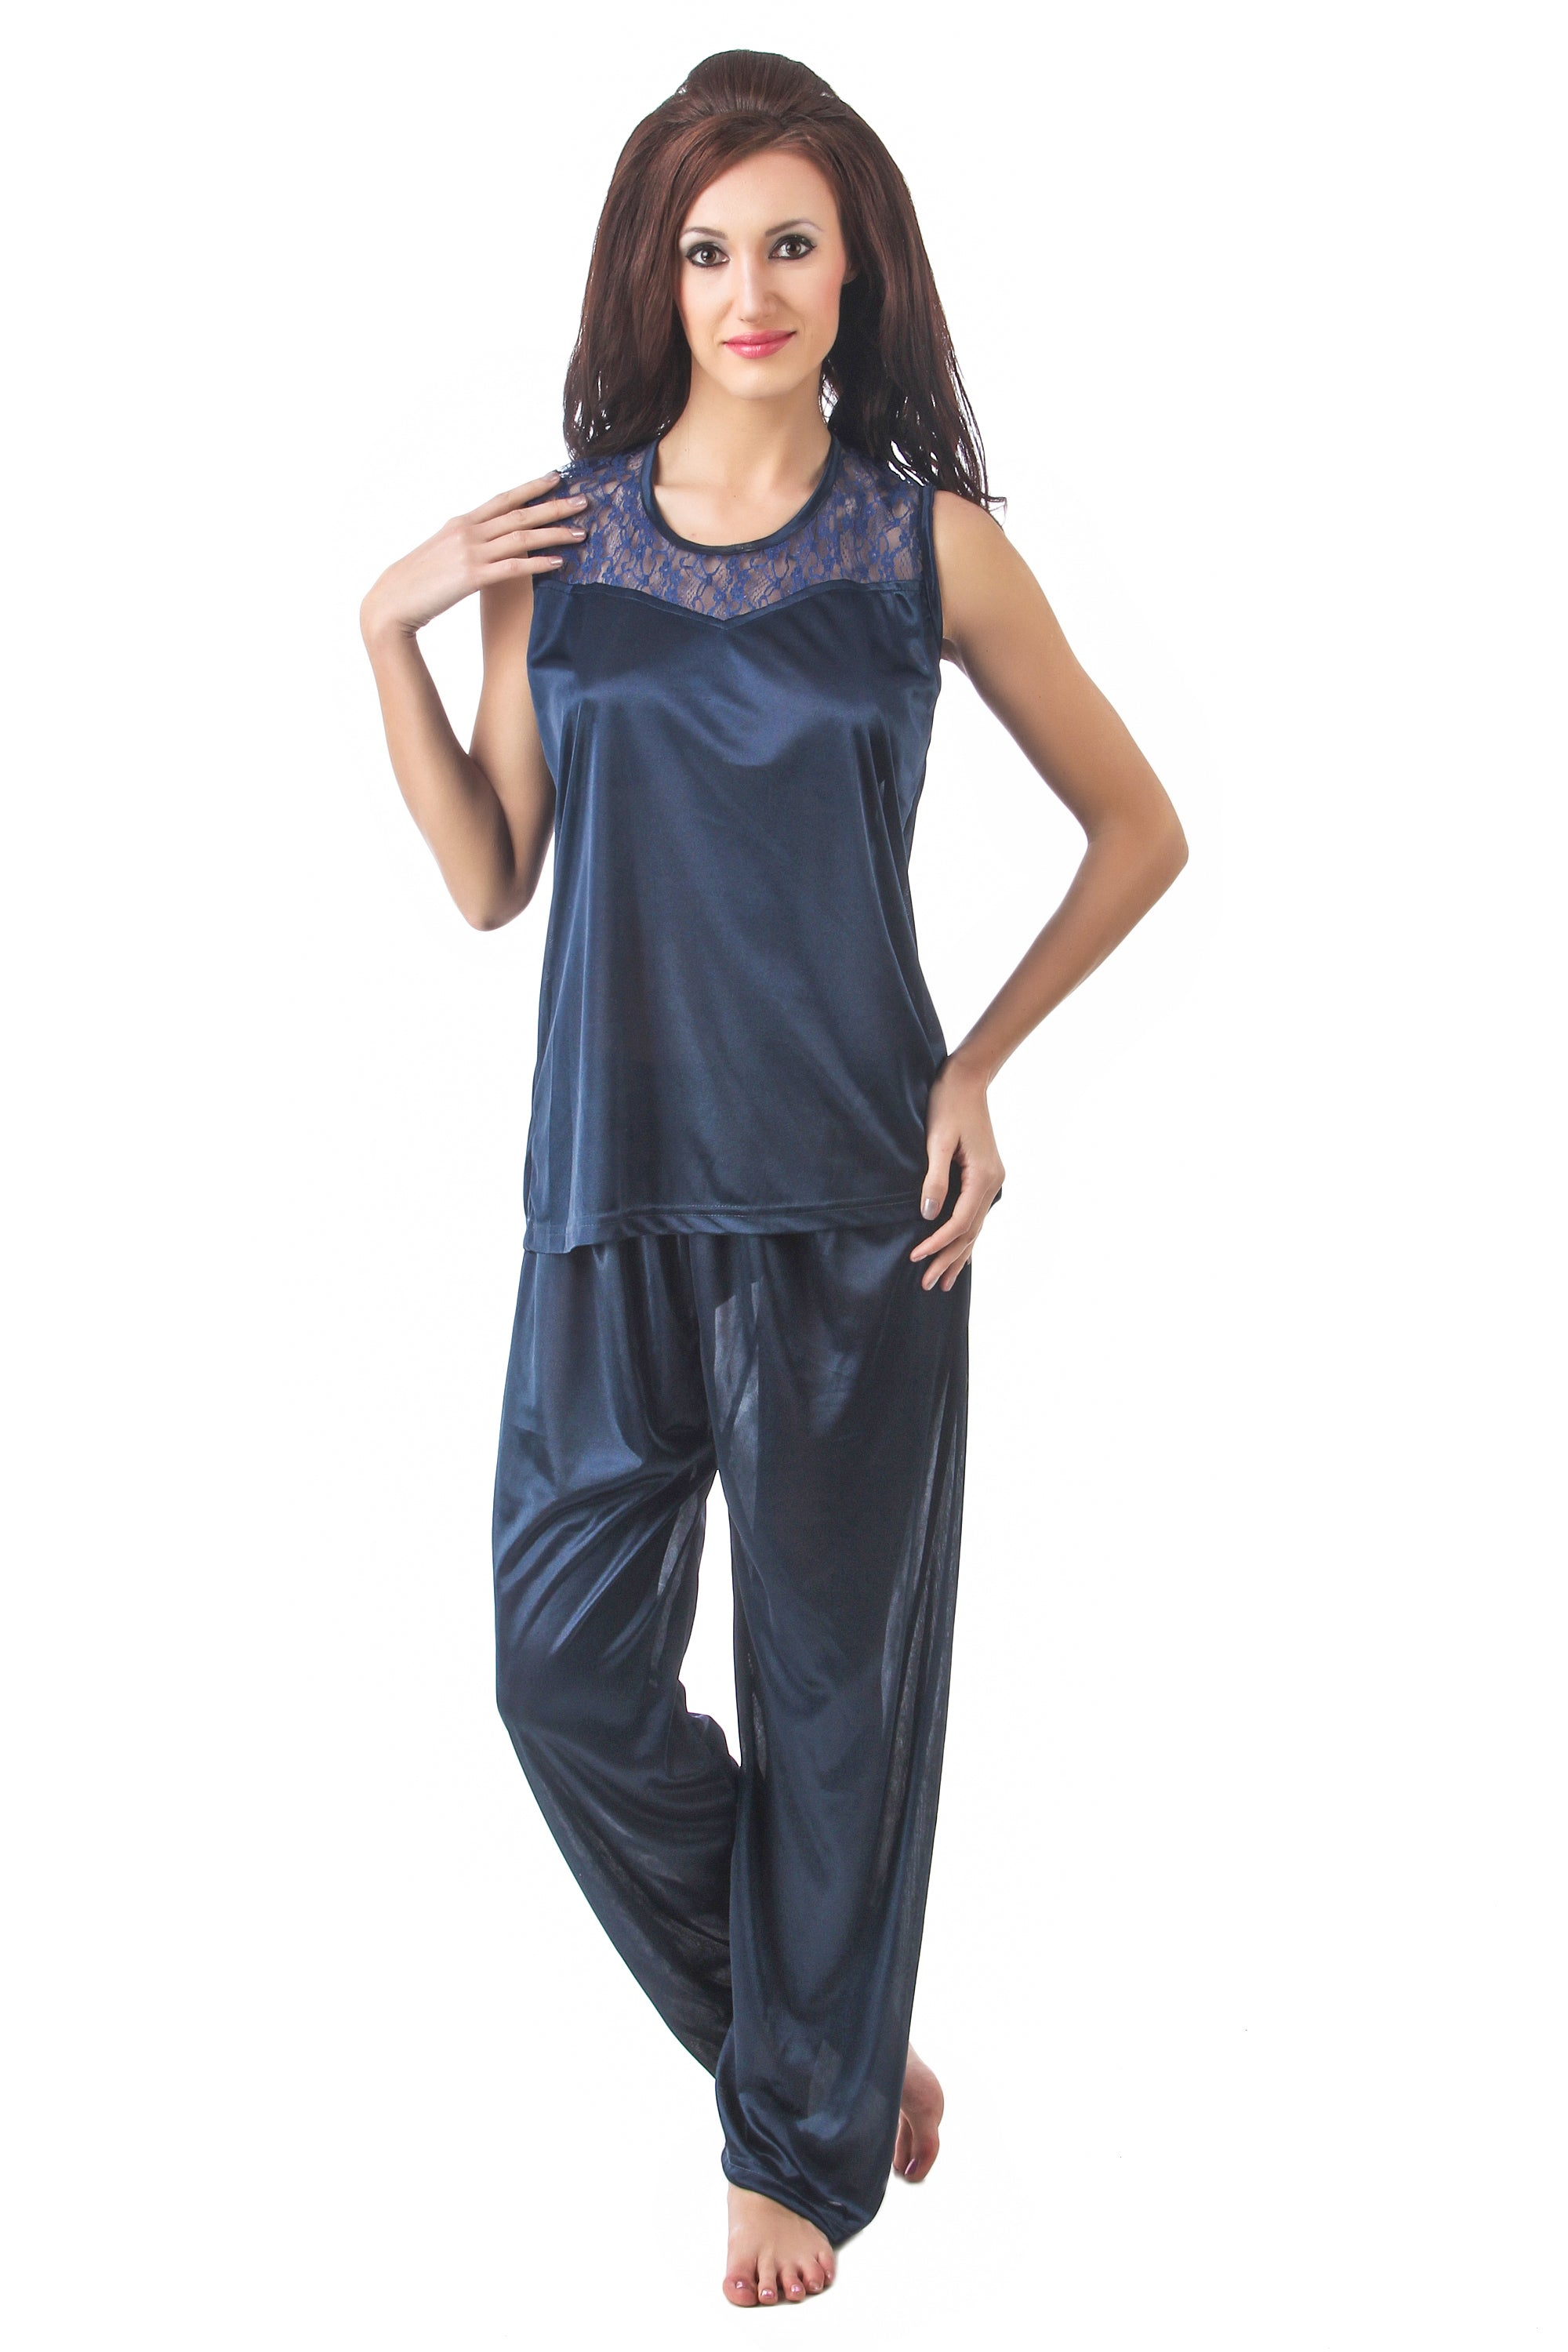 Fasense satin nightwear round neck top and pajama night suit for women DP088 - fasensestore